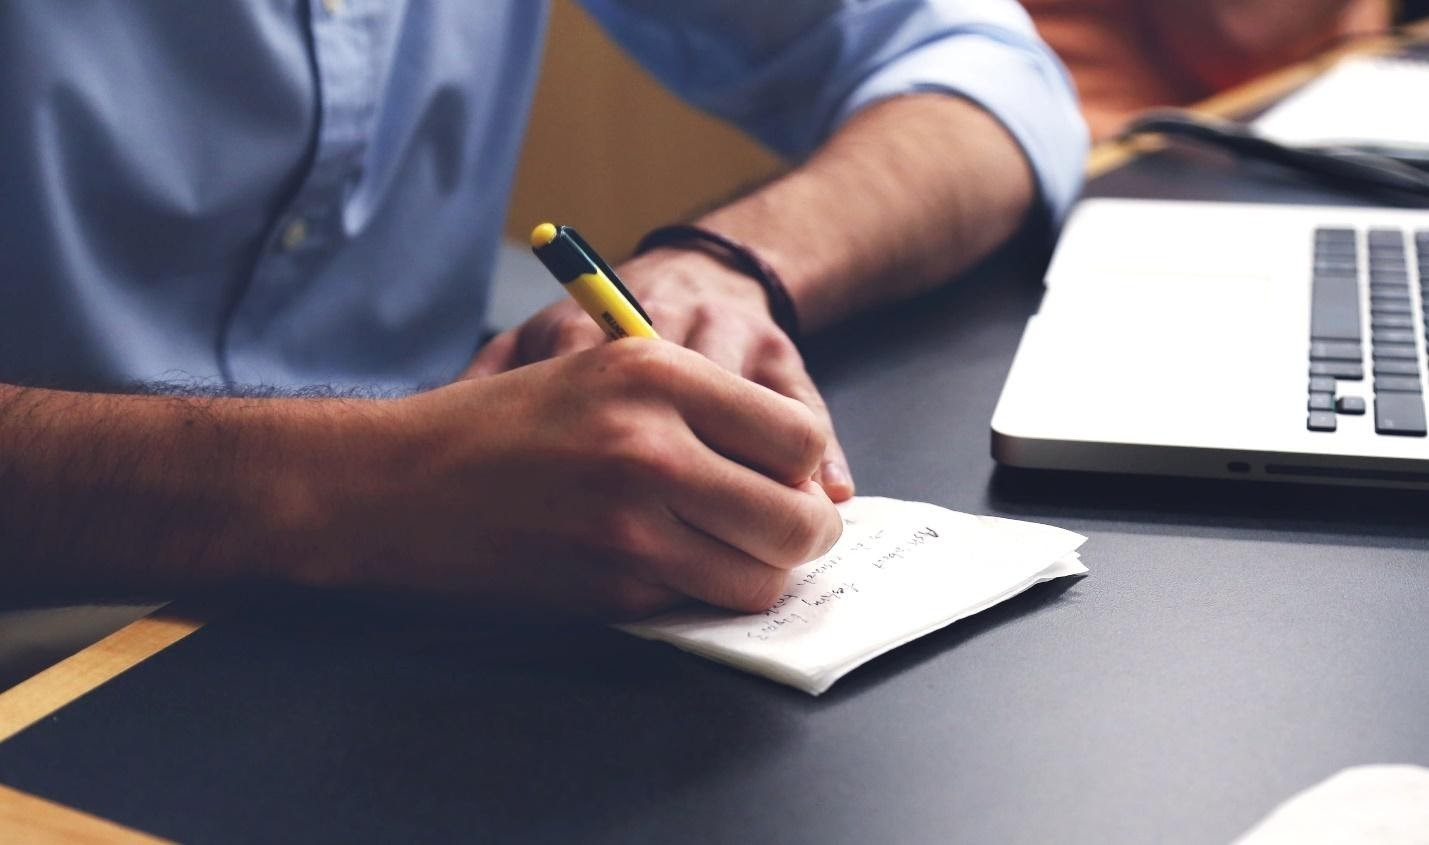 Image of a man's hand writing on a piece of paper.